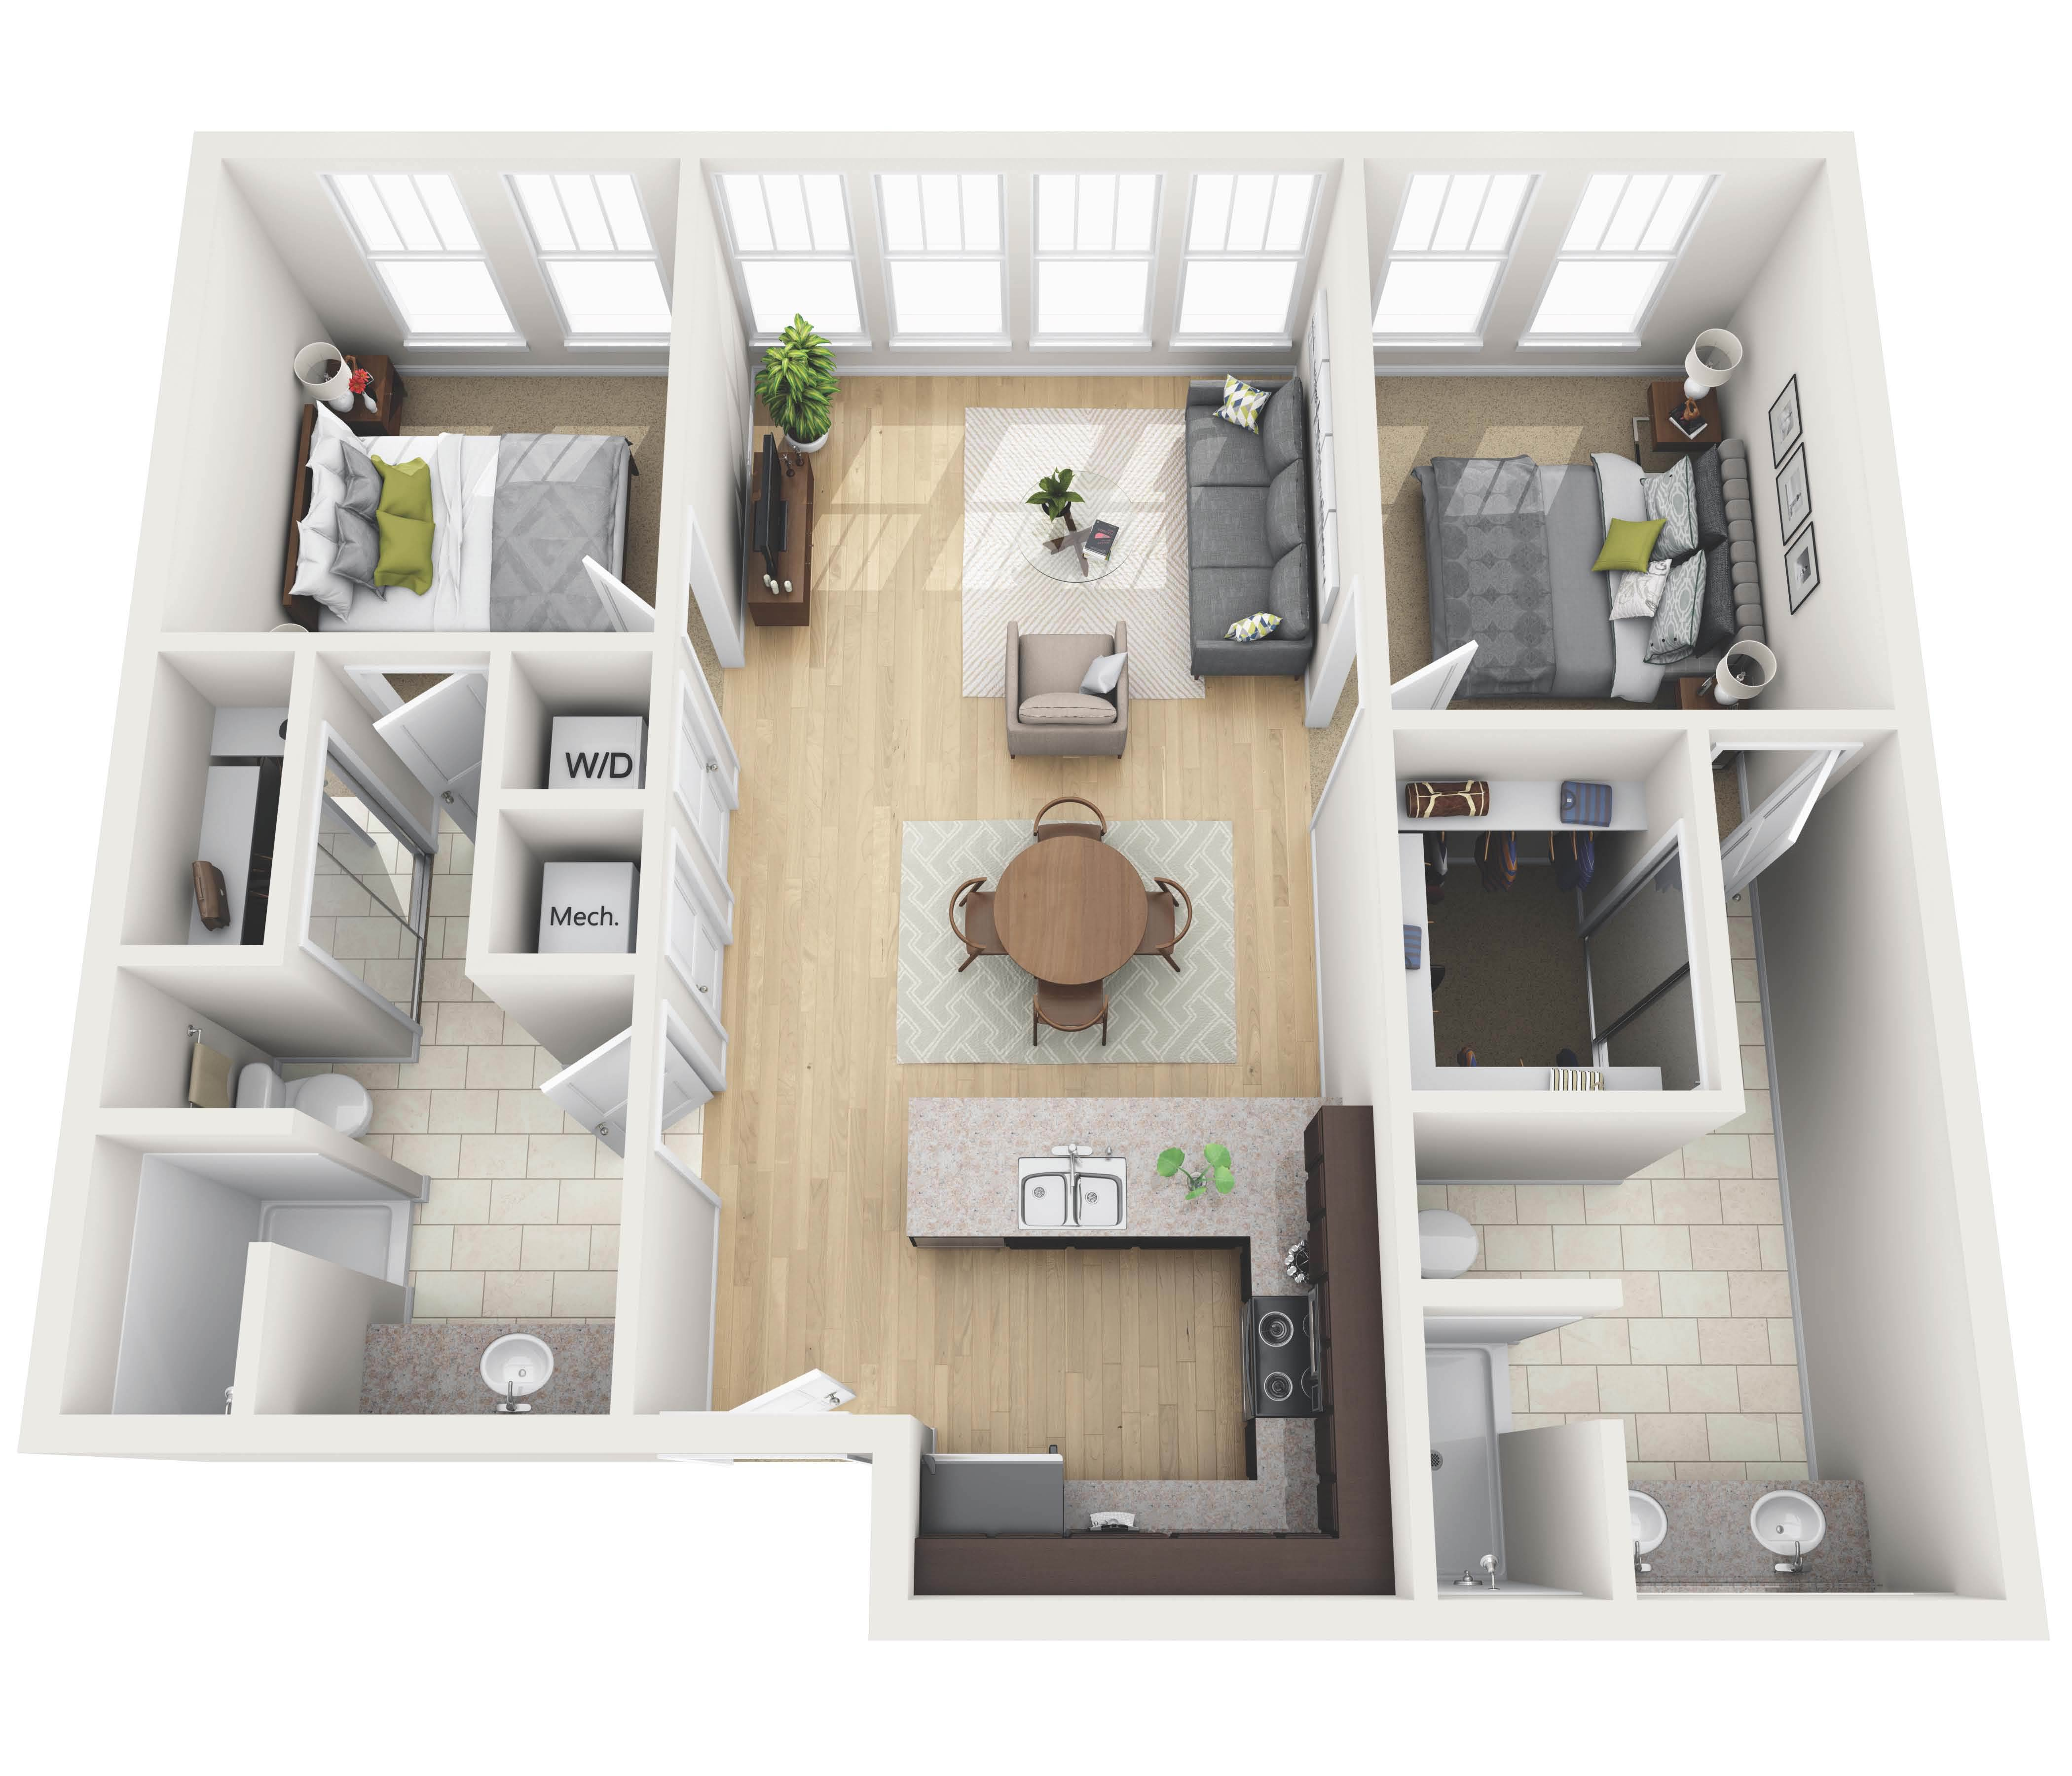 Chesterfield Lofts The Wooten Company - Loft apartment floor plans